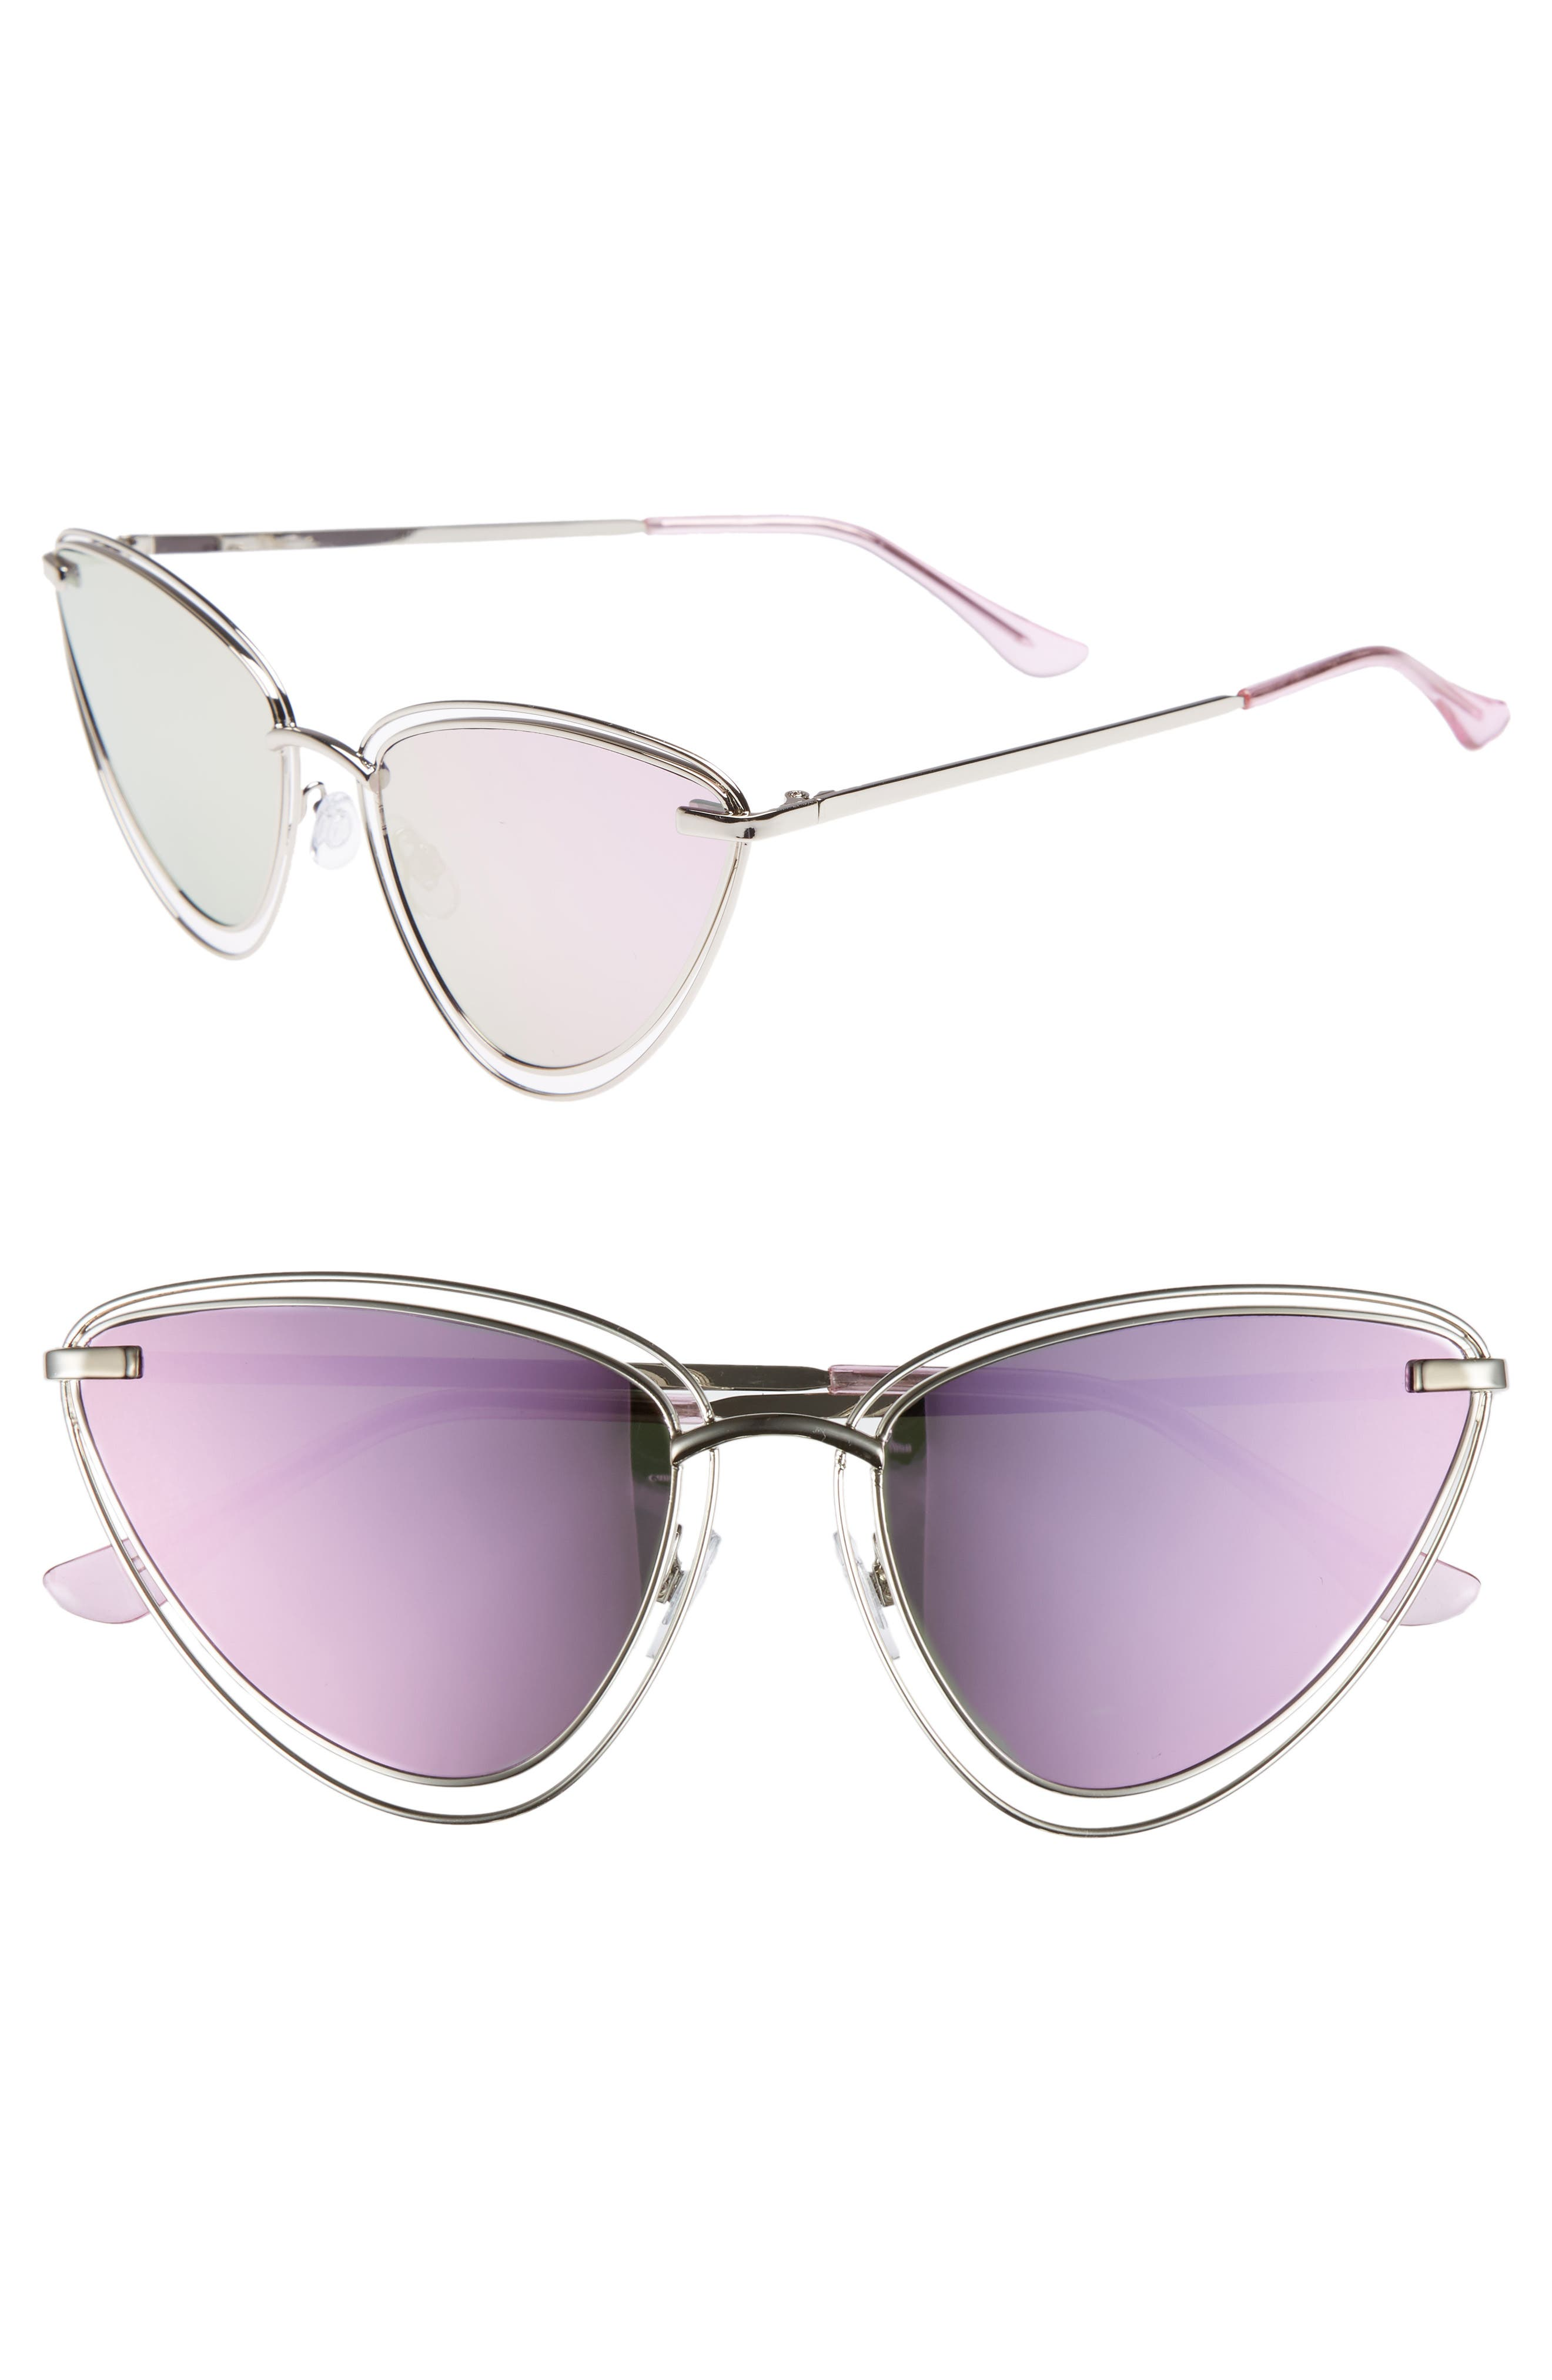 55mm Metal Cat Eye Sunglasses,                         Main,                         color, Silver/ Purple